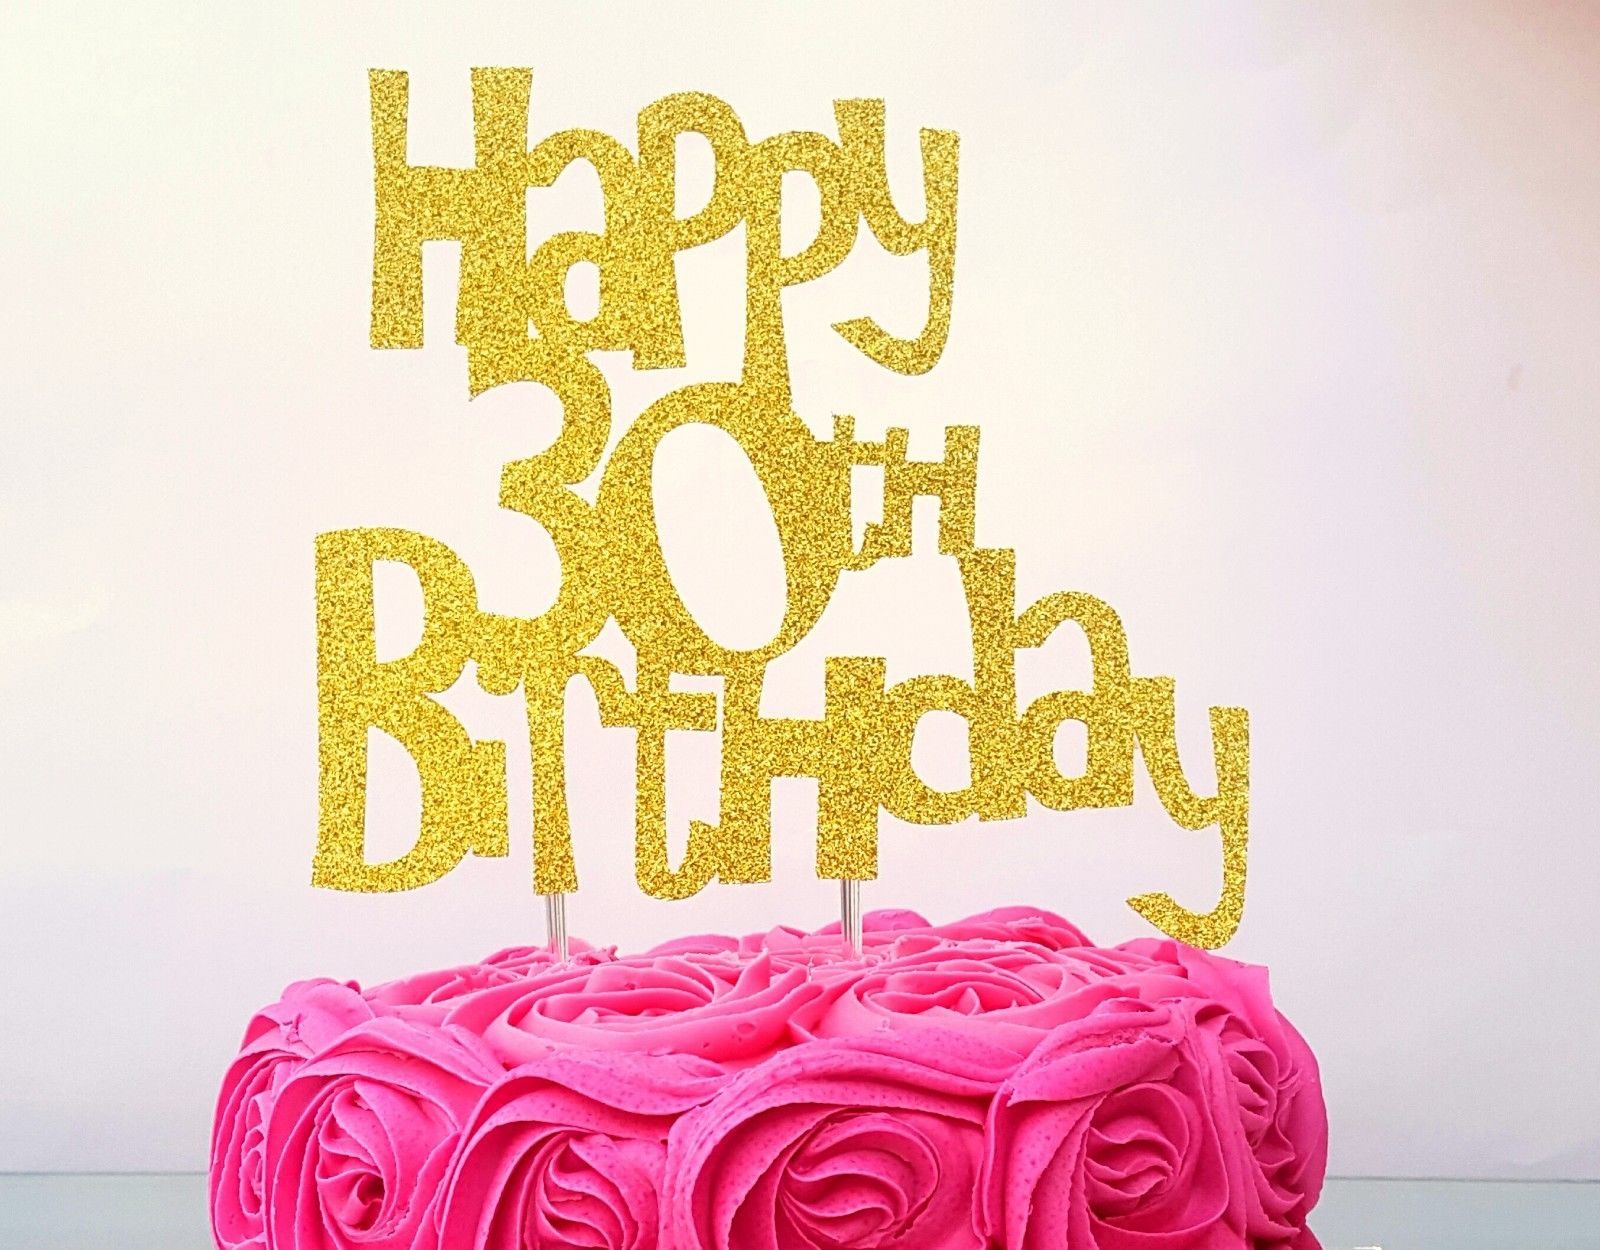 30th Birthday Cake Toppers - Shop 30th Birthday Cake Toppers Online